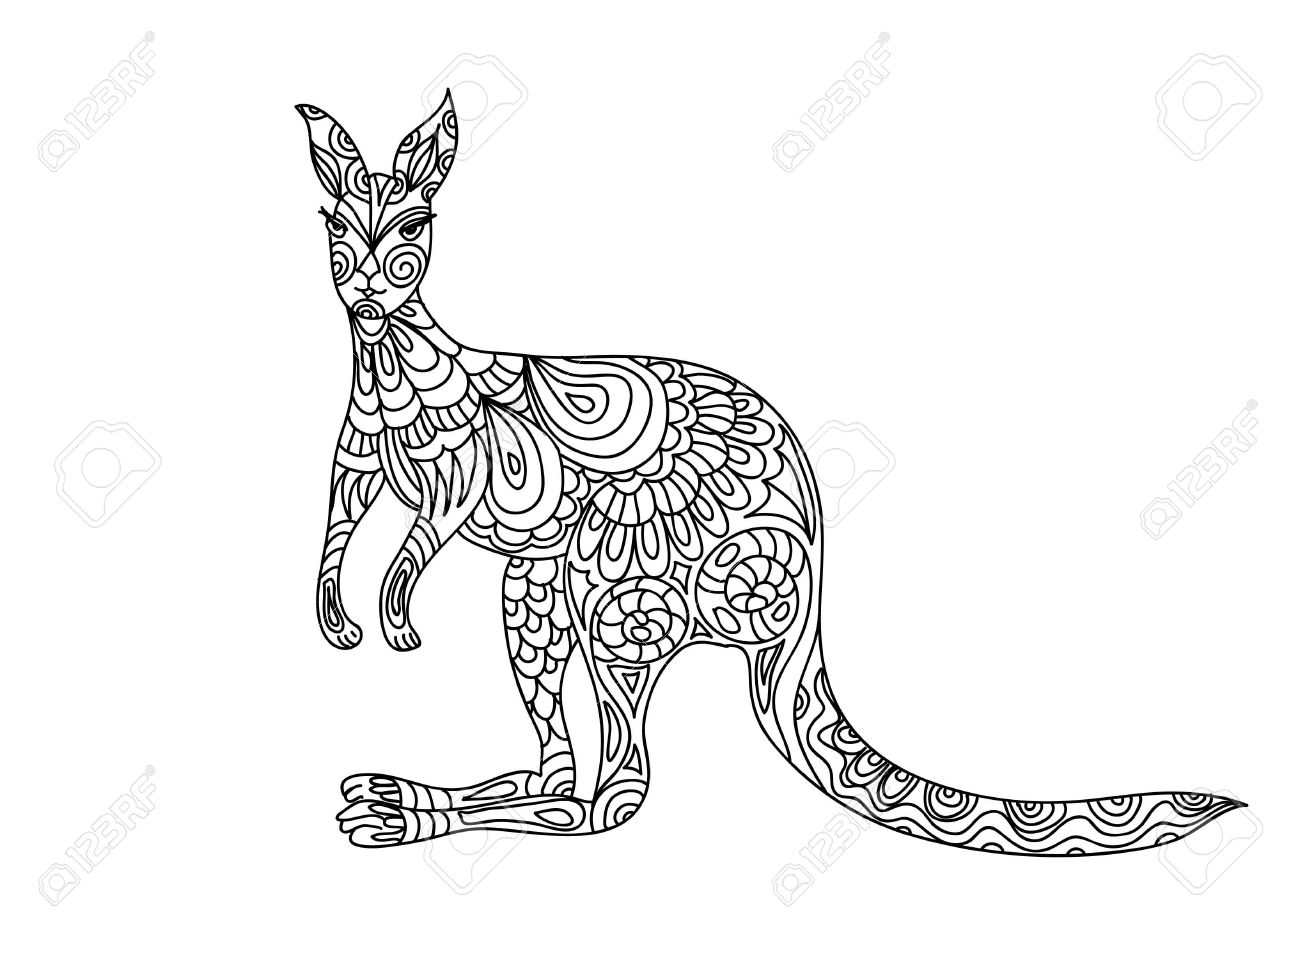 Free coloring pages kangaroo - Kangaroo Coloring Page Stock Vector 47010459